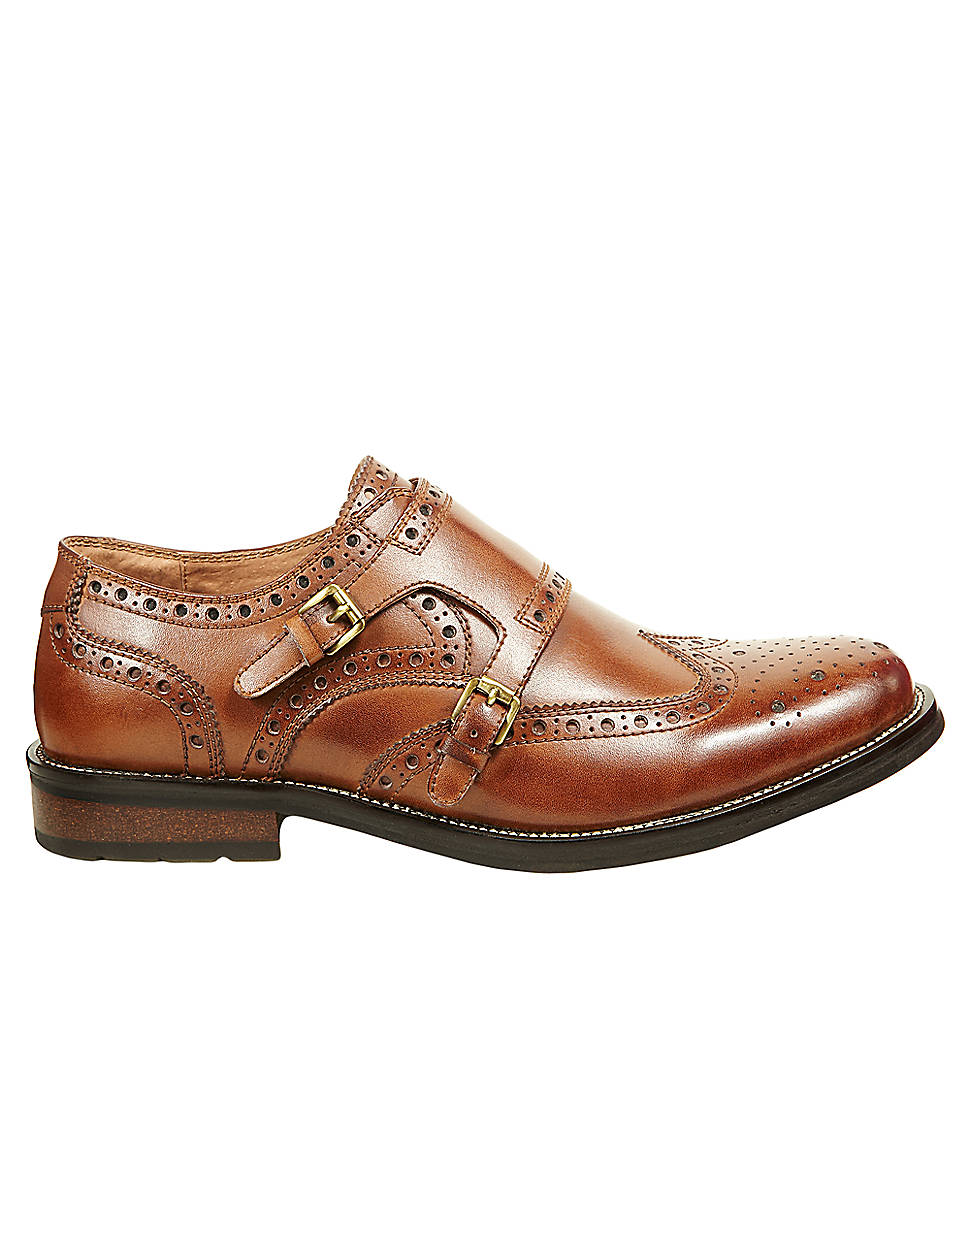 steve madden exec leather brogue dress shoe in brown for